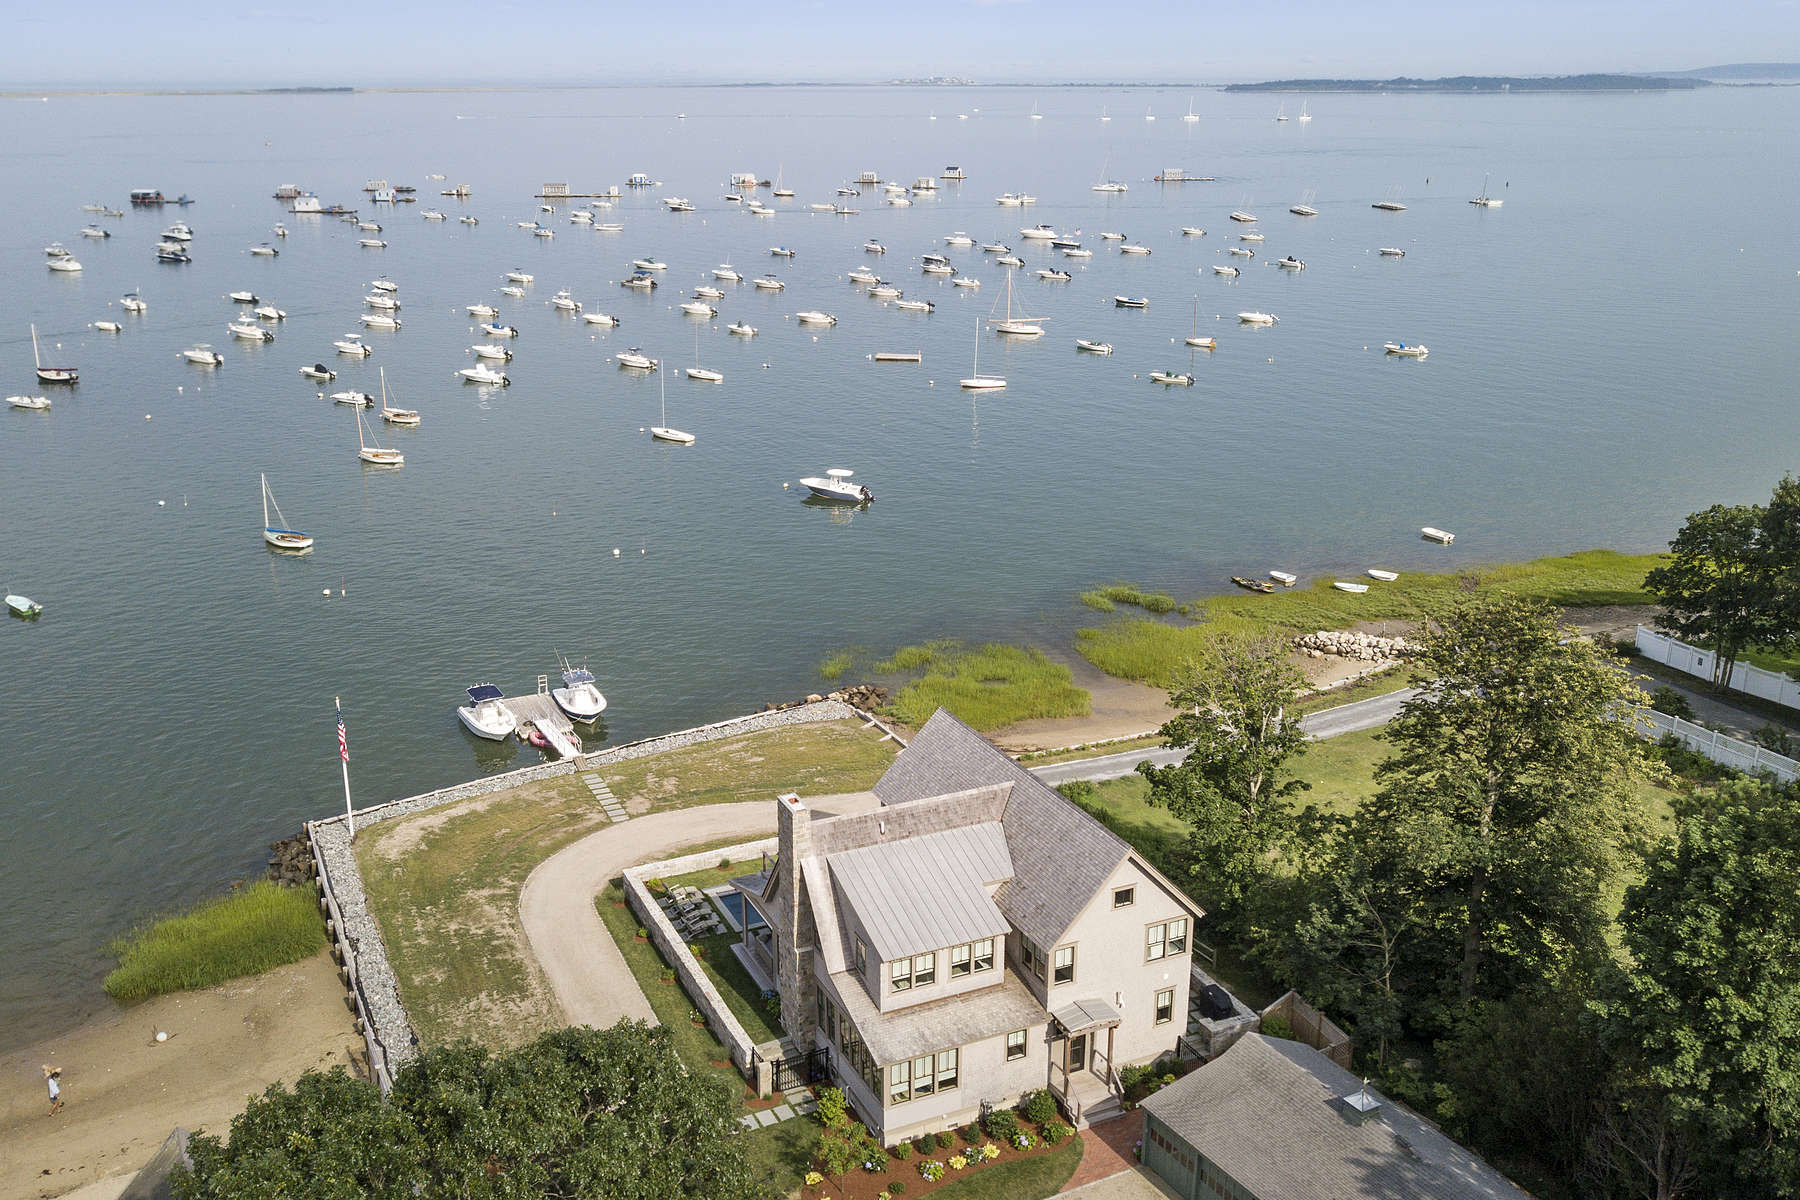 Single Family Homes for Sale at 46 Winsor Street Duxbury, Massachusetts 02332 United States